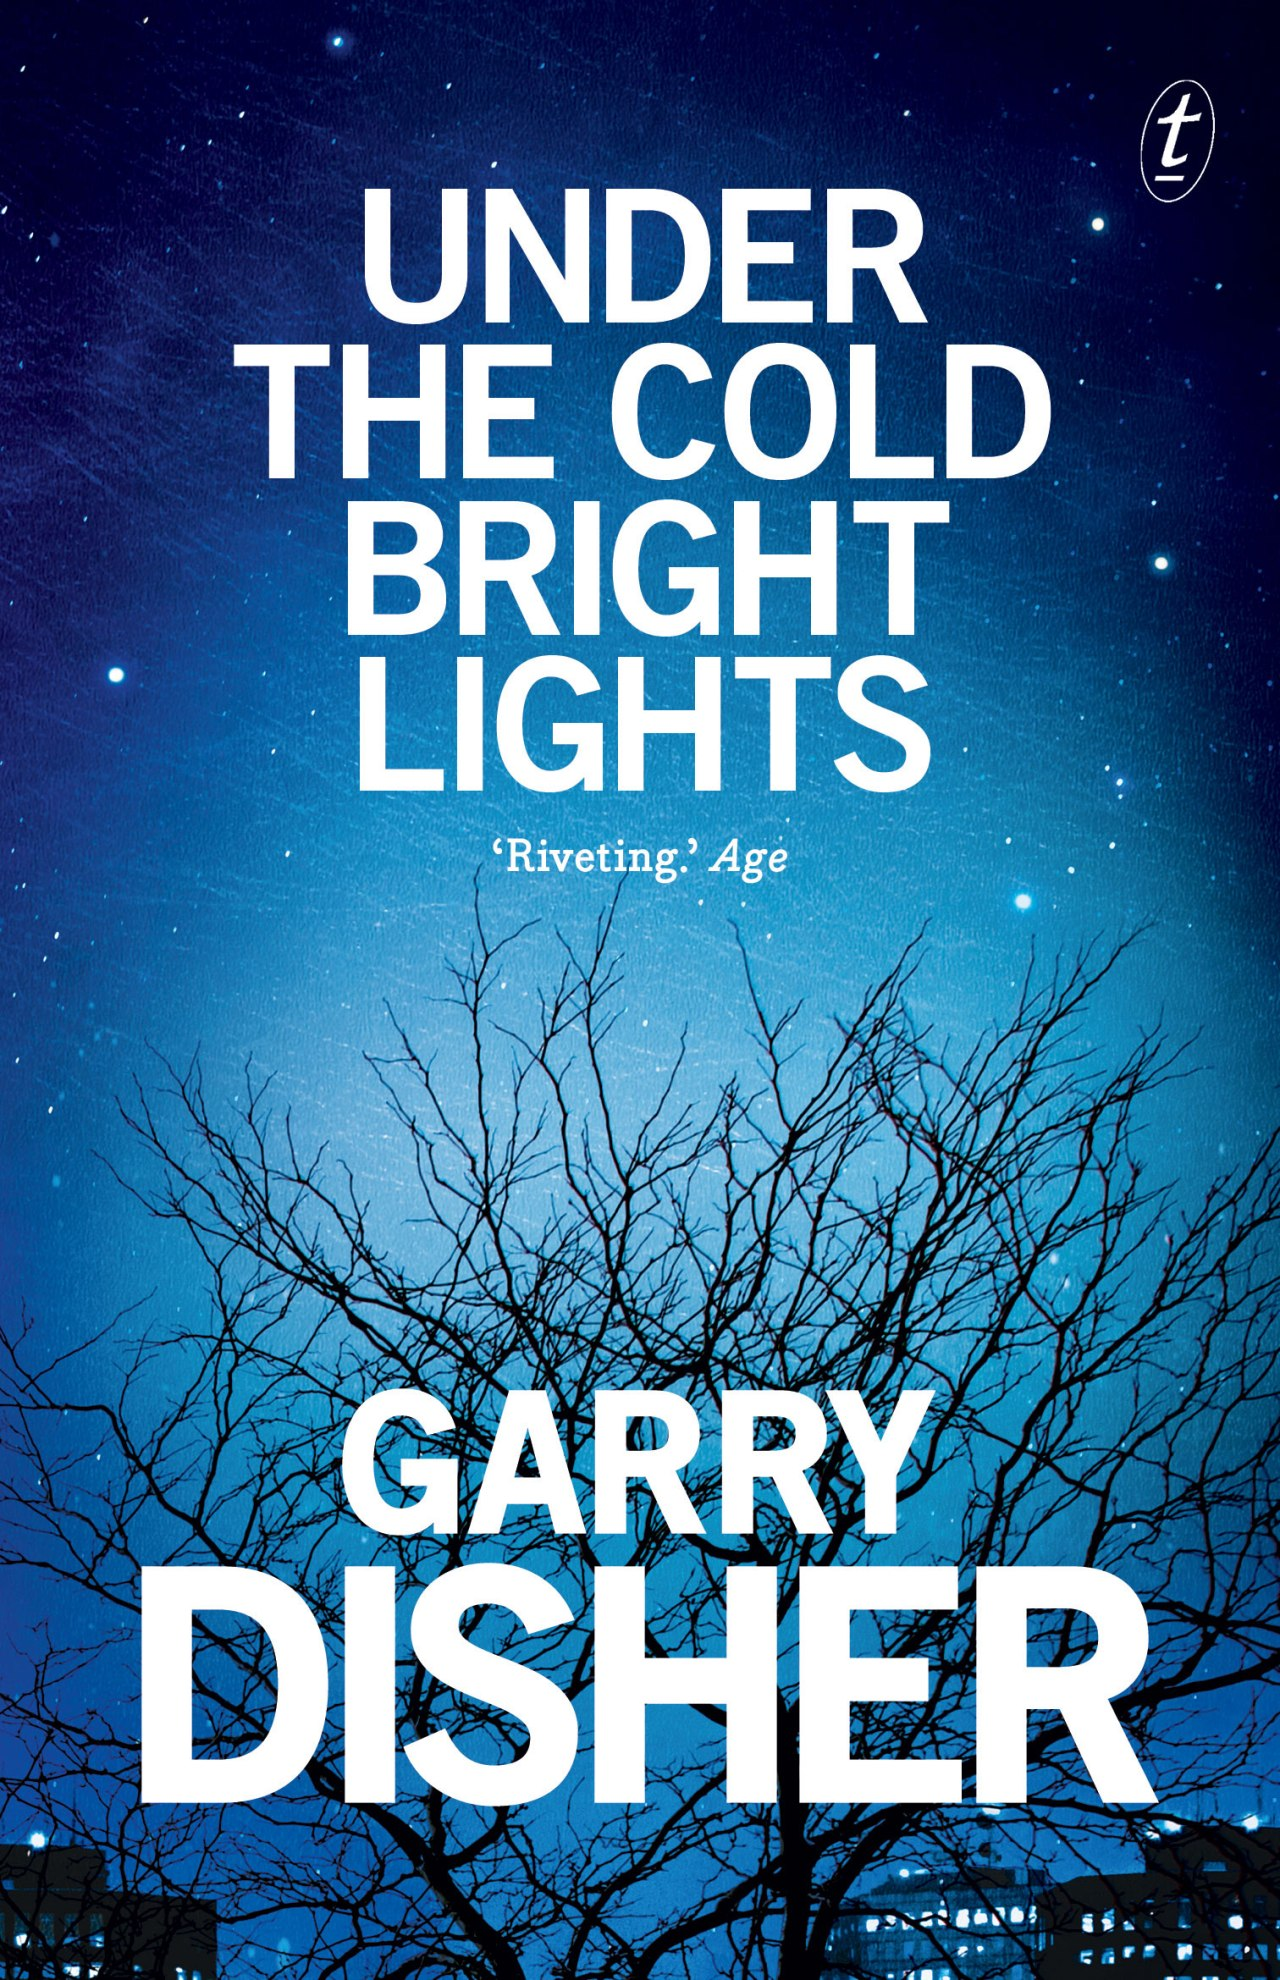 Garry Disher: Under the Cold Bright Lights